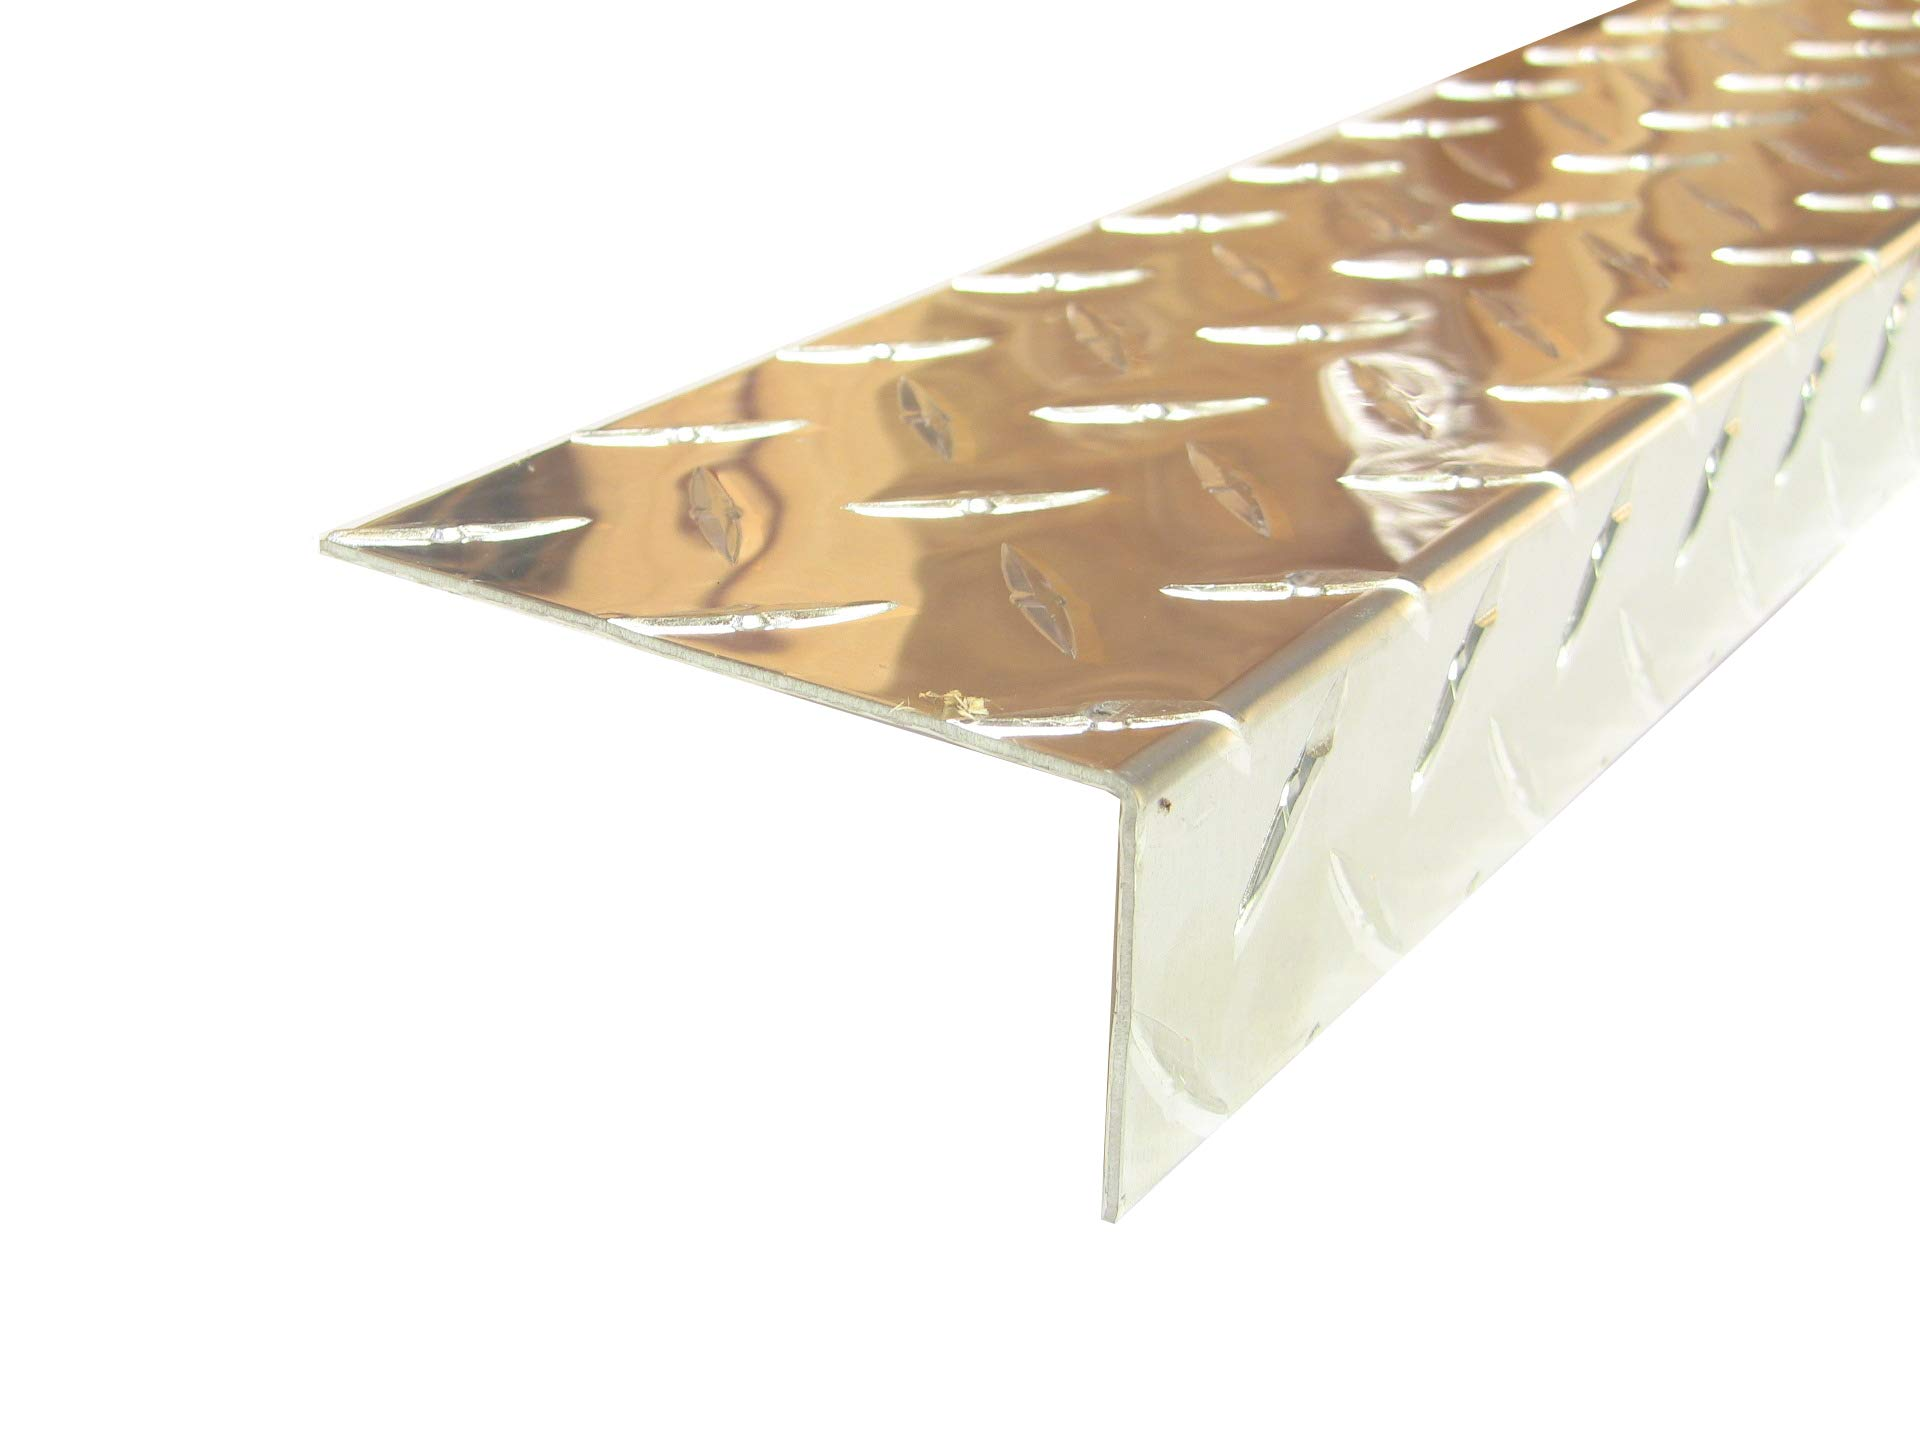 Aluminum Diamond Plate Angle .062 x 1.5 x 3.5 x 6 in. for Small Projects UAAC (1pcs) | (1/16 x 1-1/2 x 3-1/2 x 6 in.)